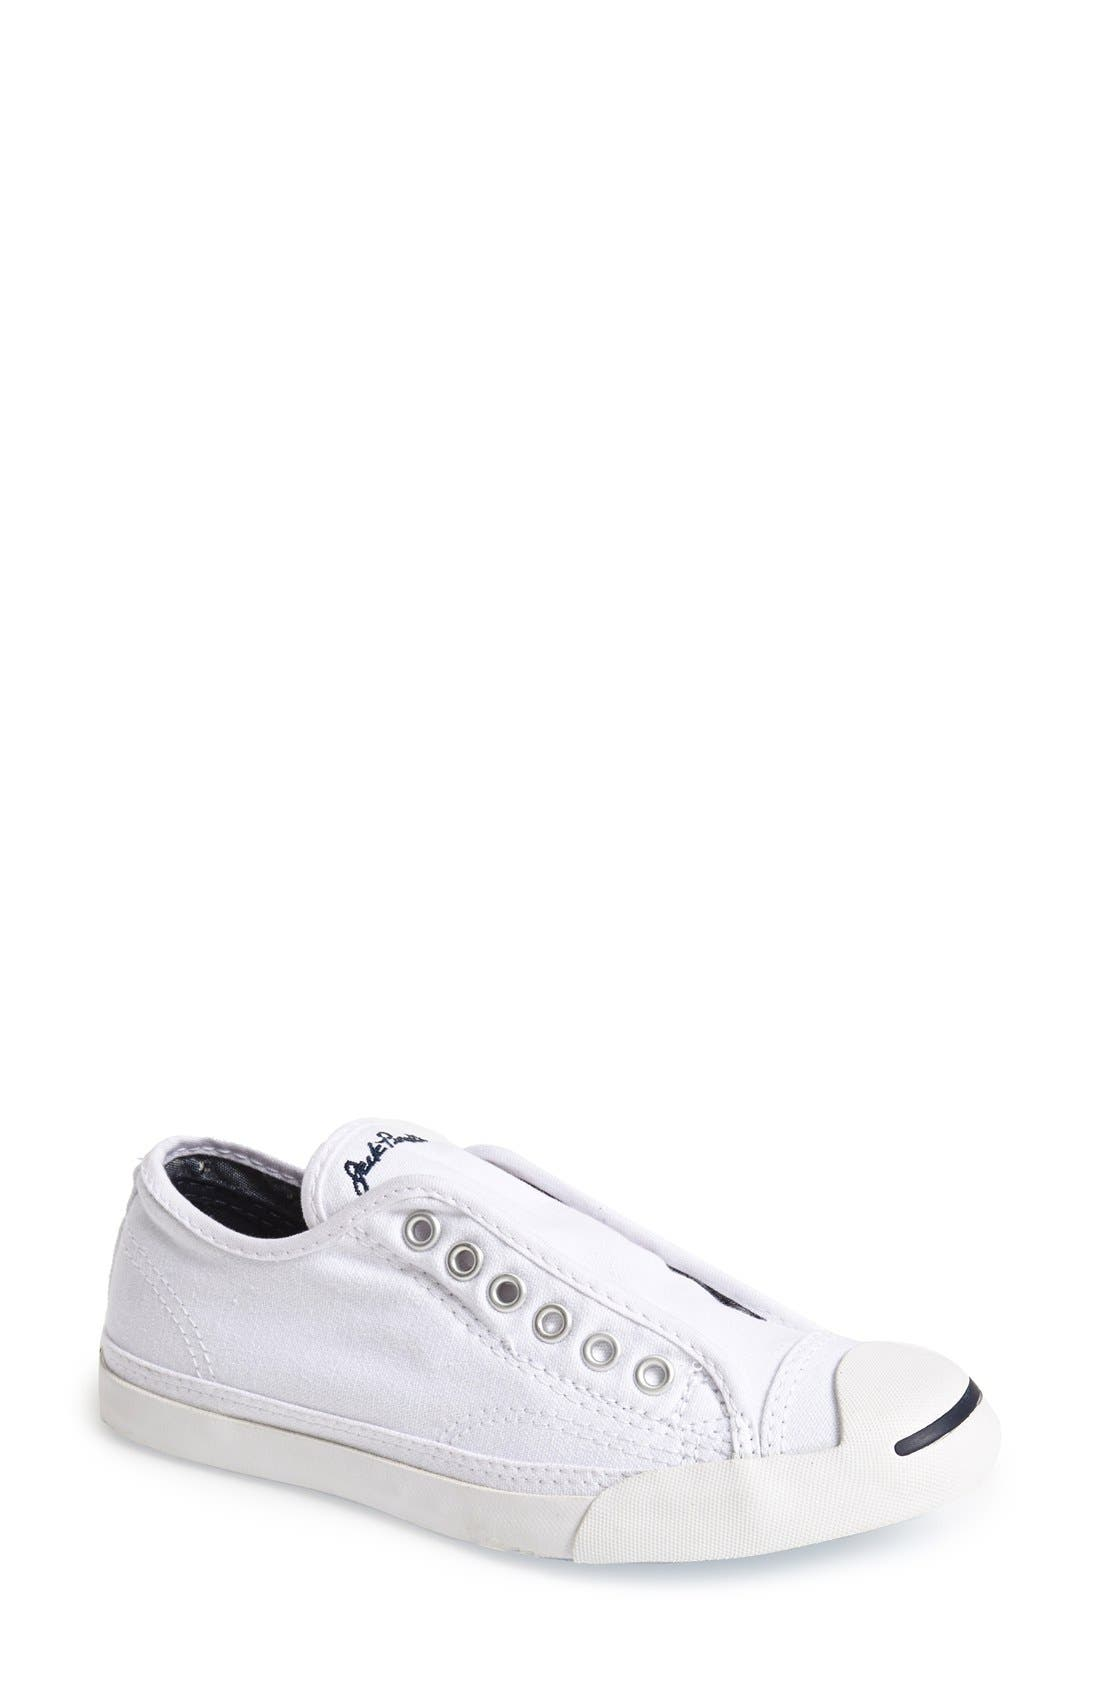 CONVERSE, Jack Purcell Low Top Sneaker, Main thumbnail 1, color, OPTIC WHITE